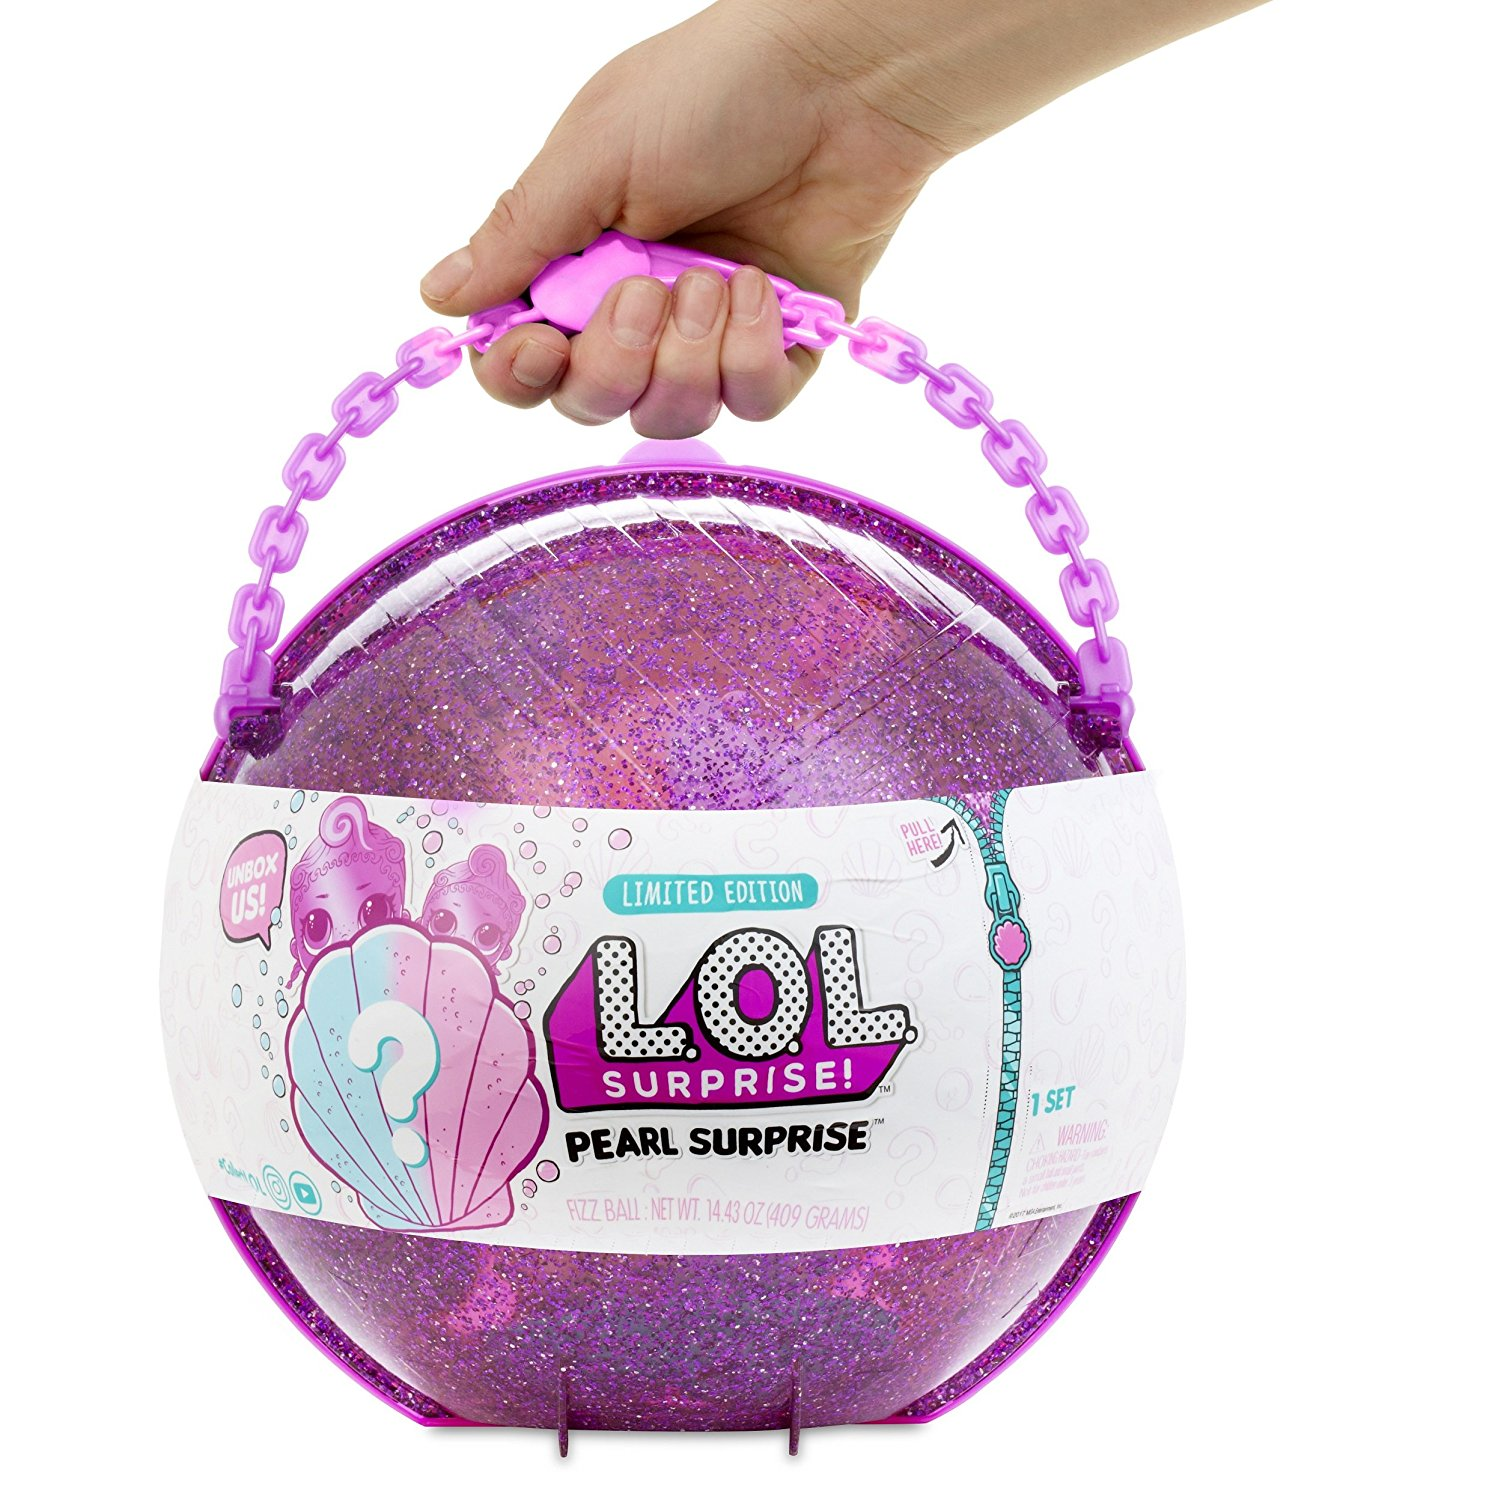 LOL Surprise Limited Edition Purple Pearl Surprise - Click Image to Close